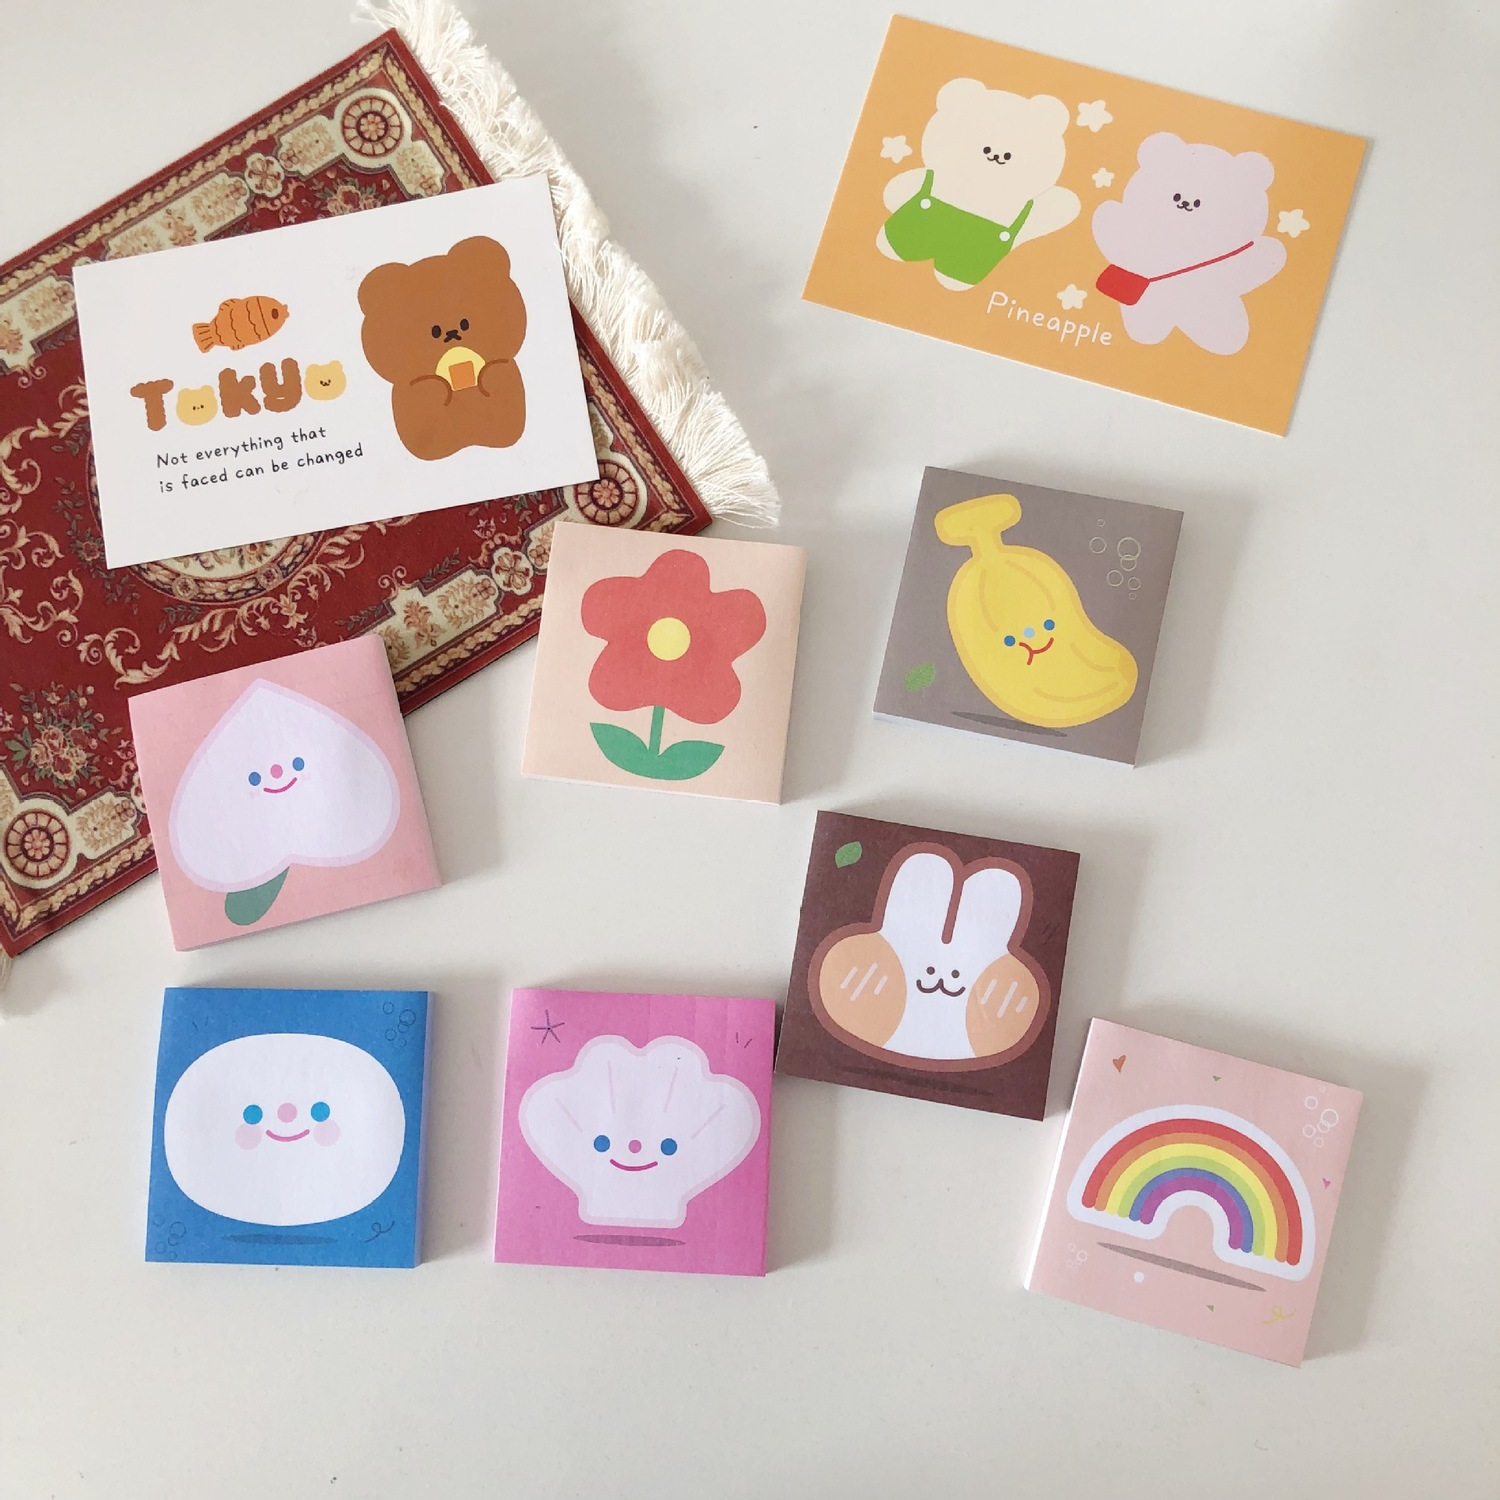 SIXONE 80 Sheets Ins Peach Smile Rabbit Floret Sticky Notes Student Memo Pad Kawaii Message Paper Stickers School Stationery